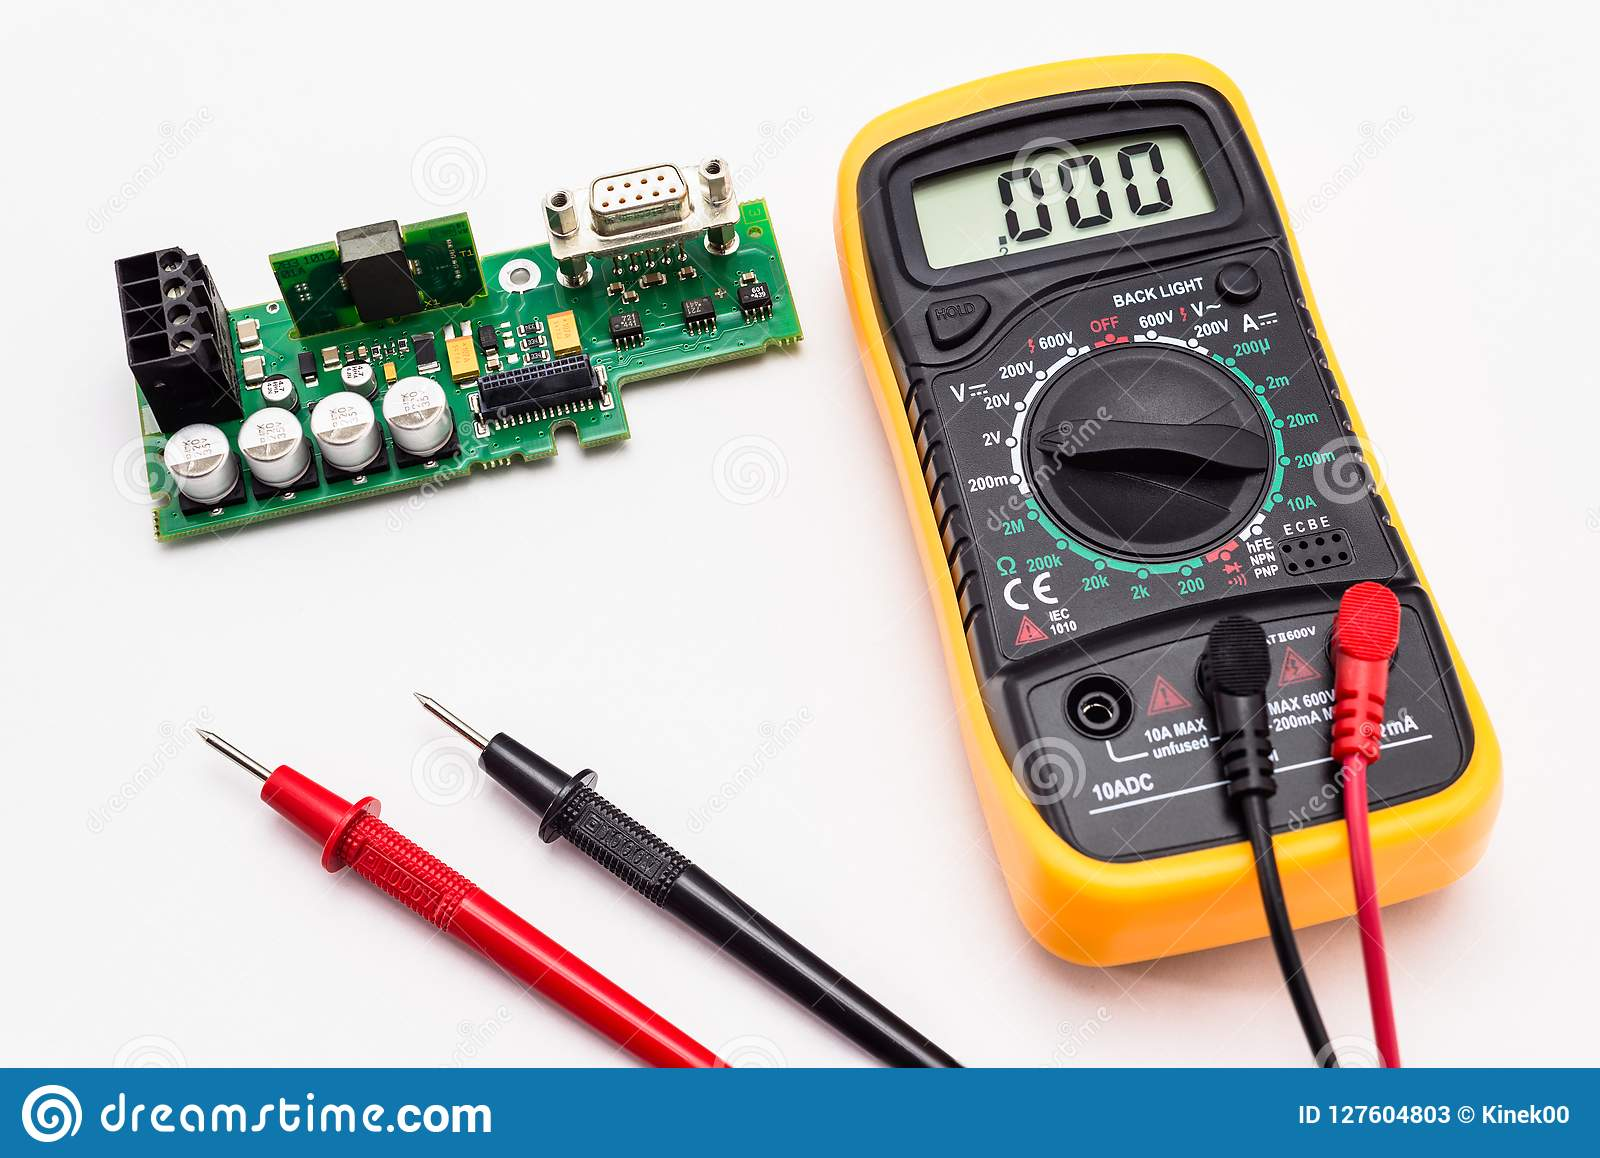 Electric multimeter with red and black probe, display indicating zero, with printed circuit board. Isolated on a white background